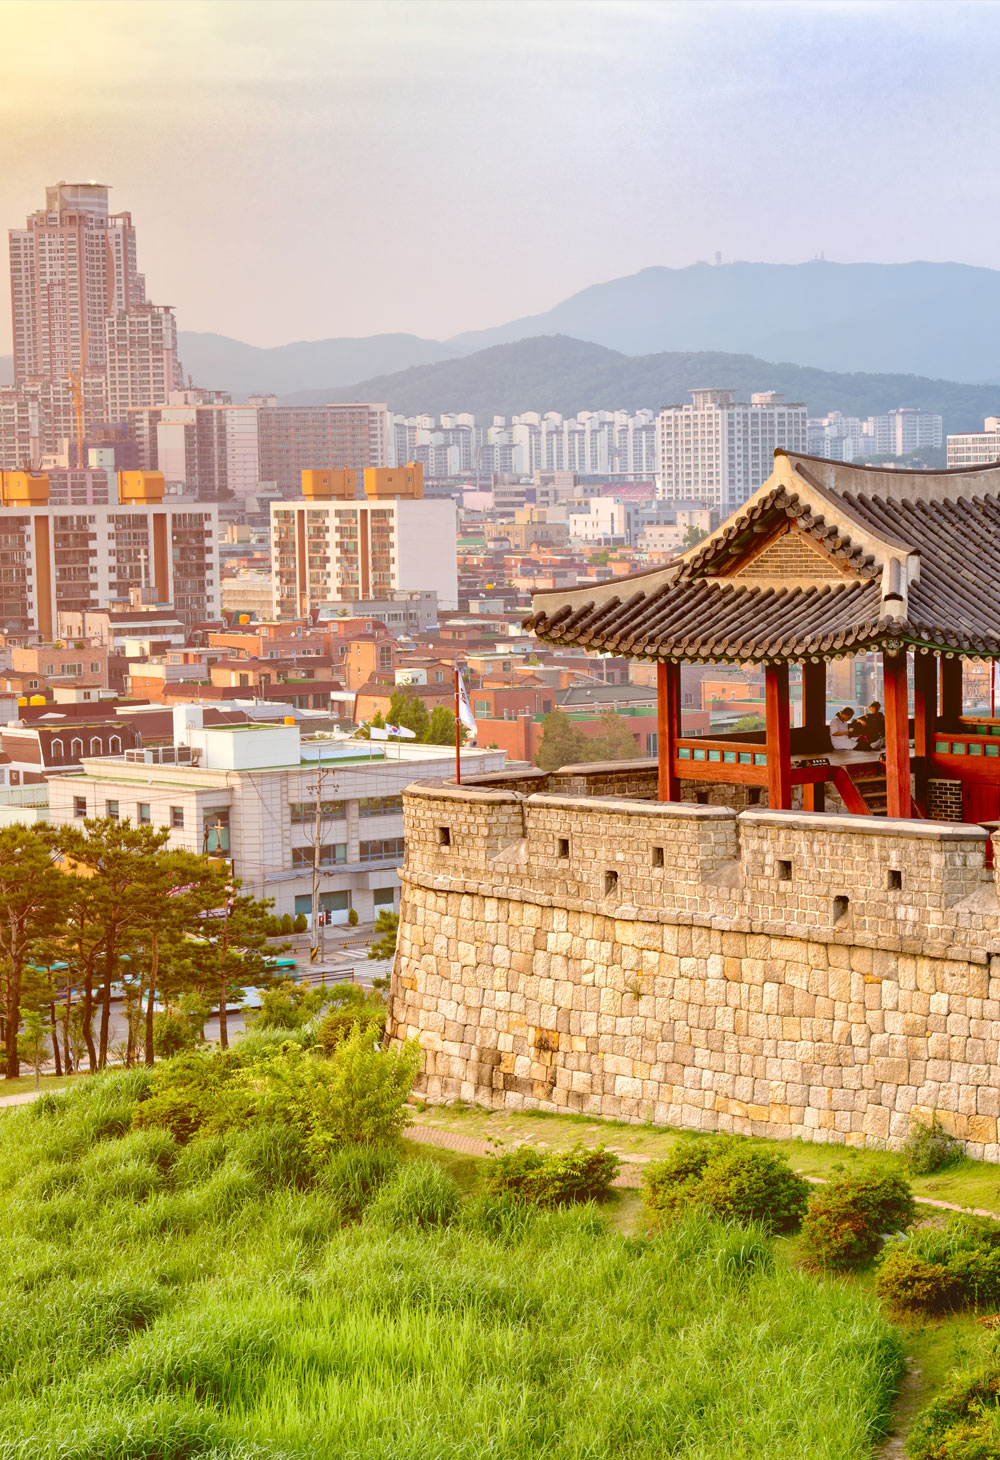 Sunset at the Hwaseong Fortress, a Joseon Dynasty fortification surrounding the center of Suwon, Korea